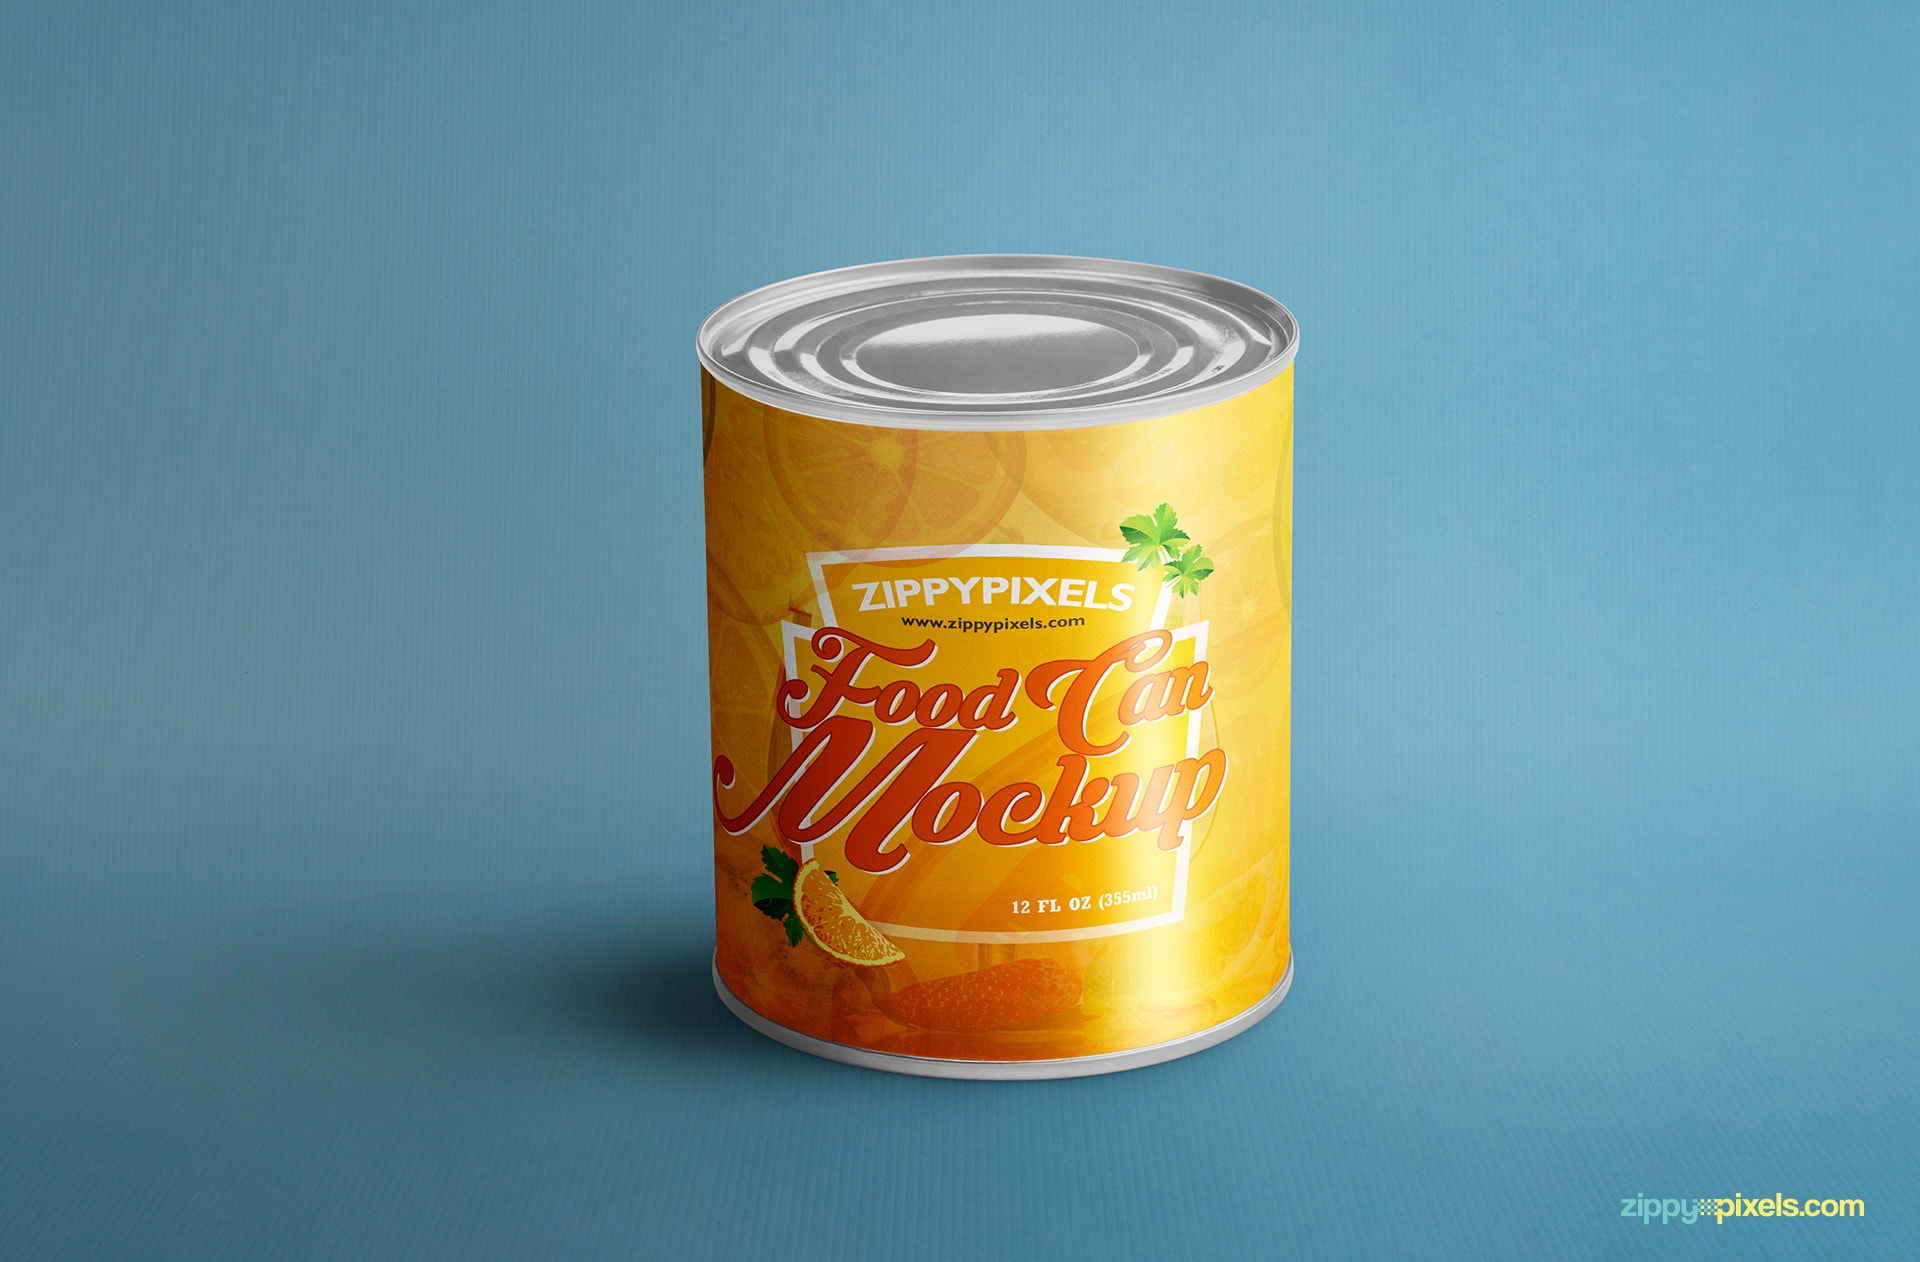 full view of the free food can mock-up